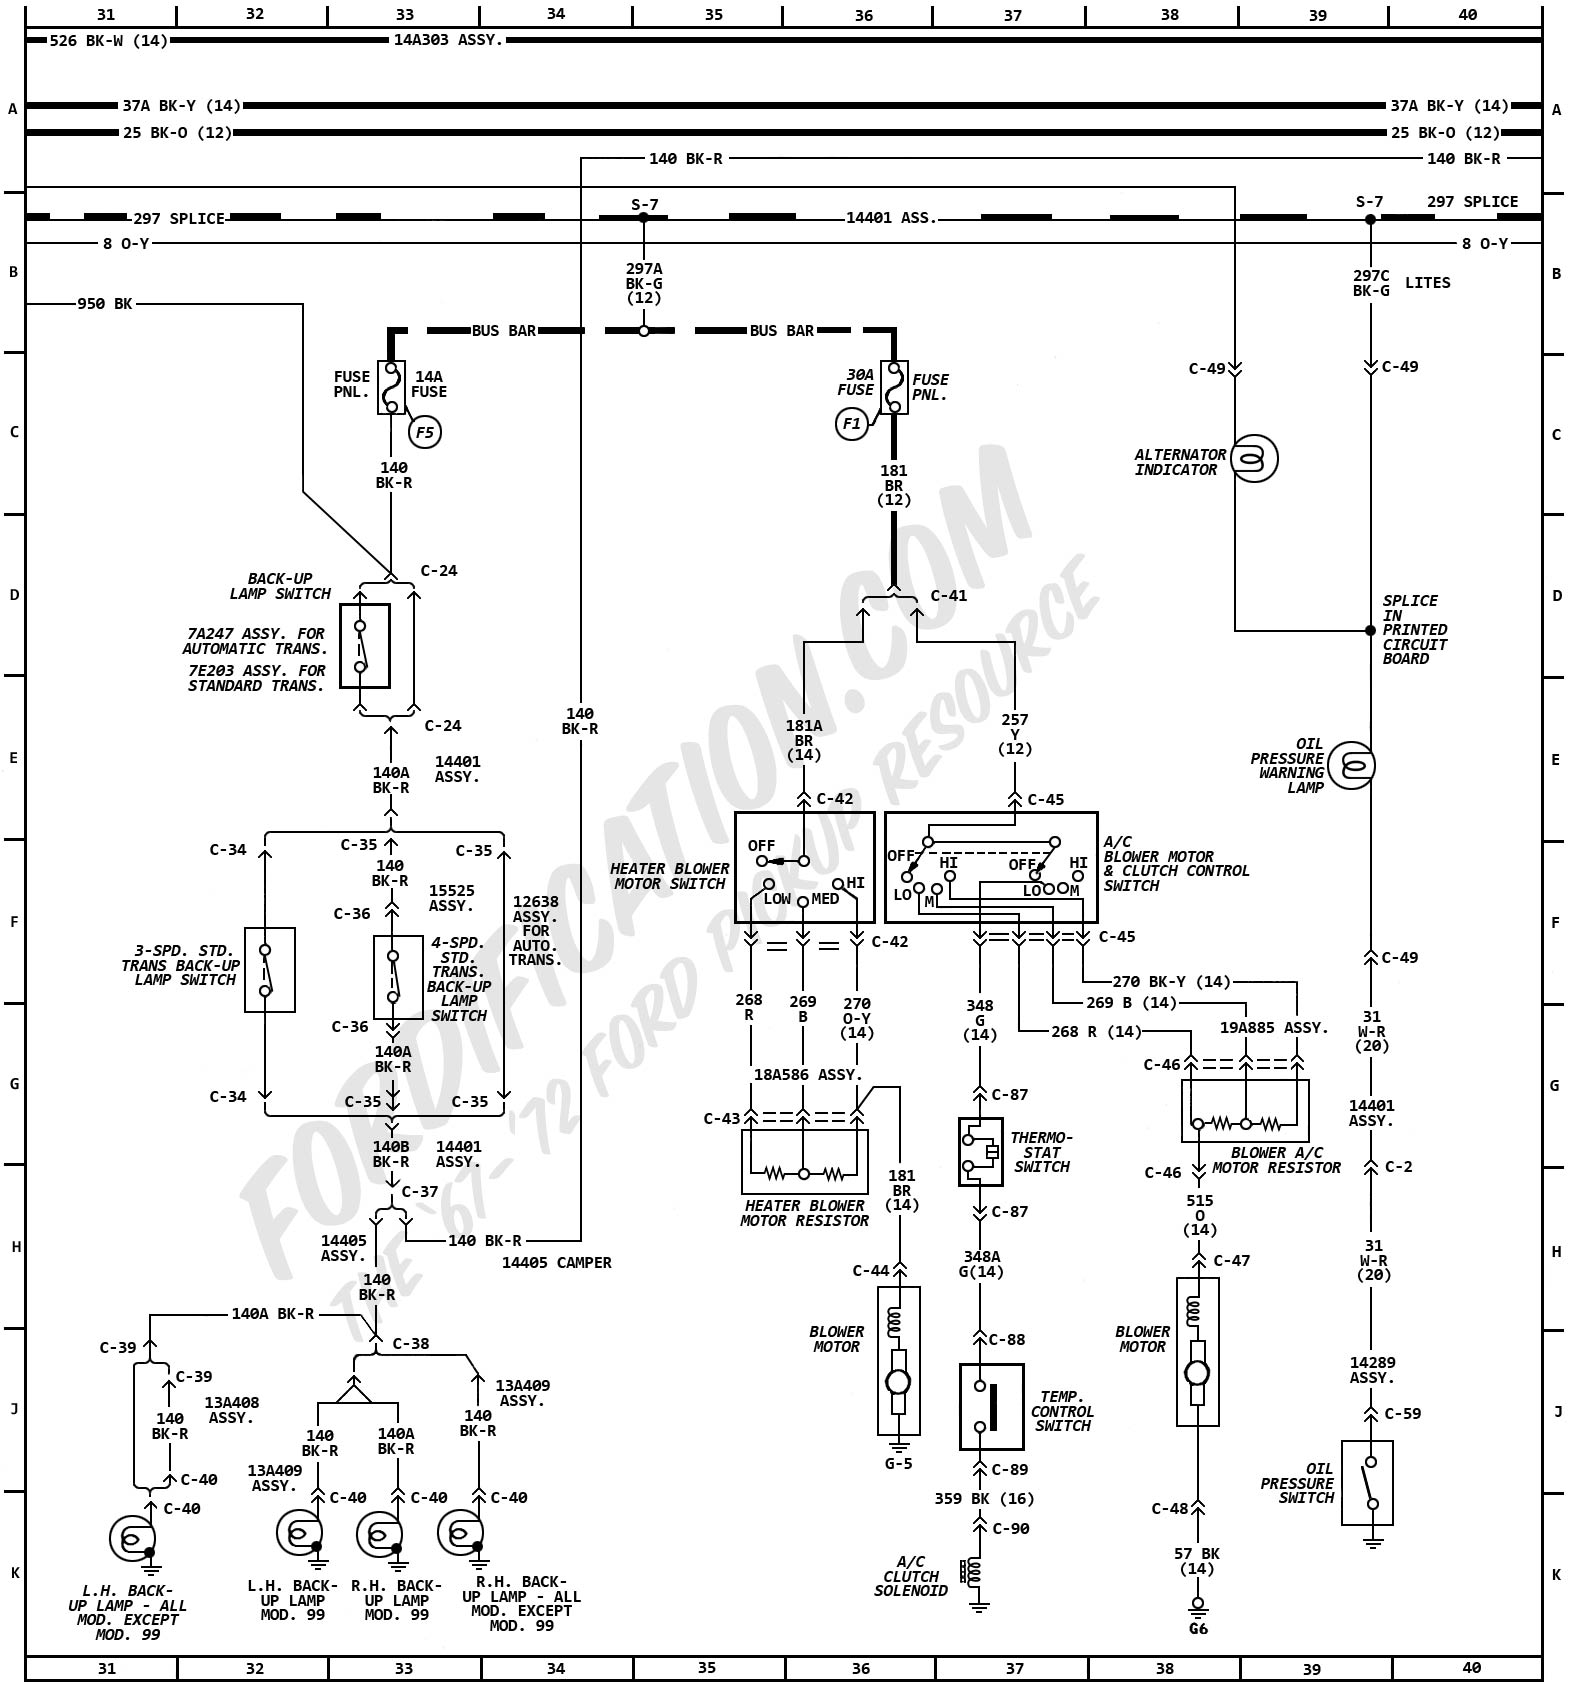 71 F250 Wiring Diagram Will Be A Thing Ground Mustang 72 Ford Diagrams Schematic Rh Theodocle Fion Com 73l F100